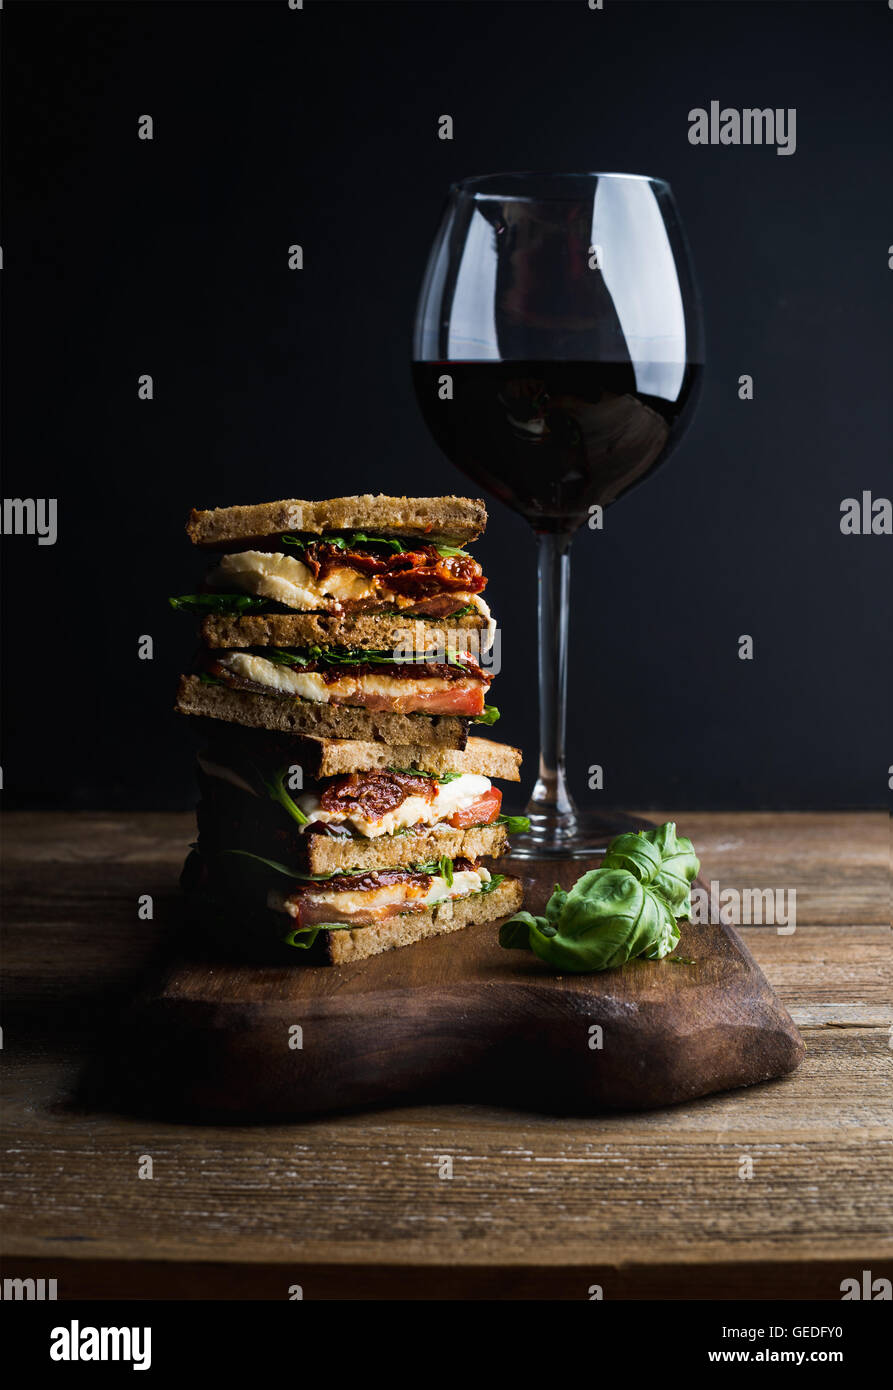 Caprese sandwich or panini and glass of red wine. Whole grain bread, mozzarella, dried tomatoes, basil. Dark background, - Stock Image